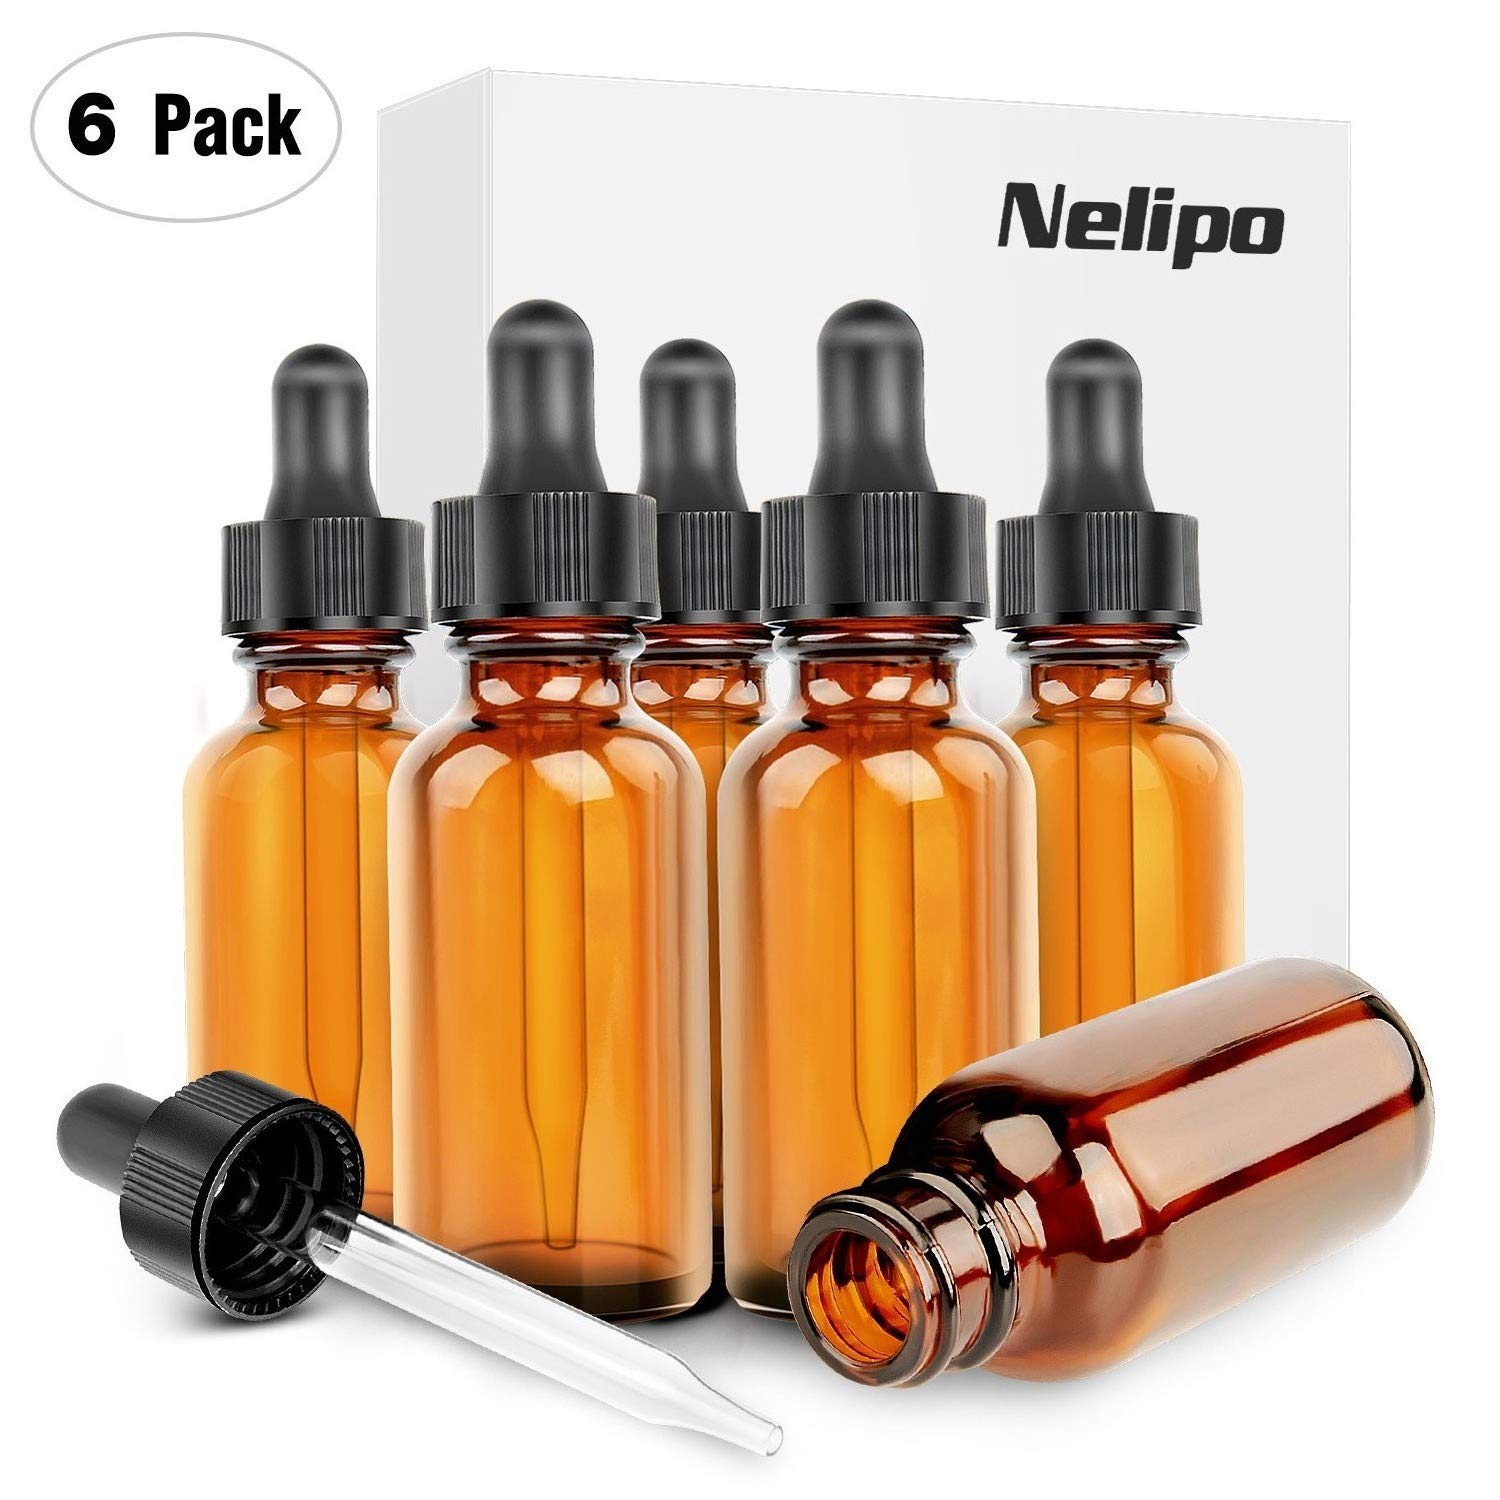 Nelipo 1oz Amber Glass Bottles for Essential Oils with Glass Eye Dropper - Pack of 6